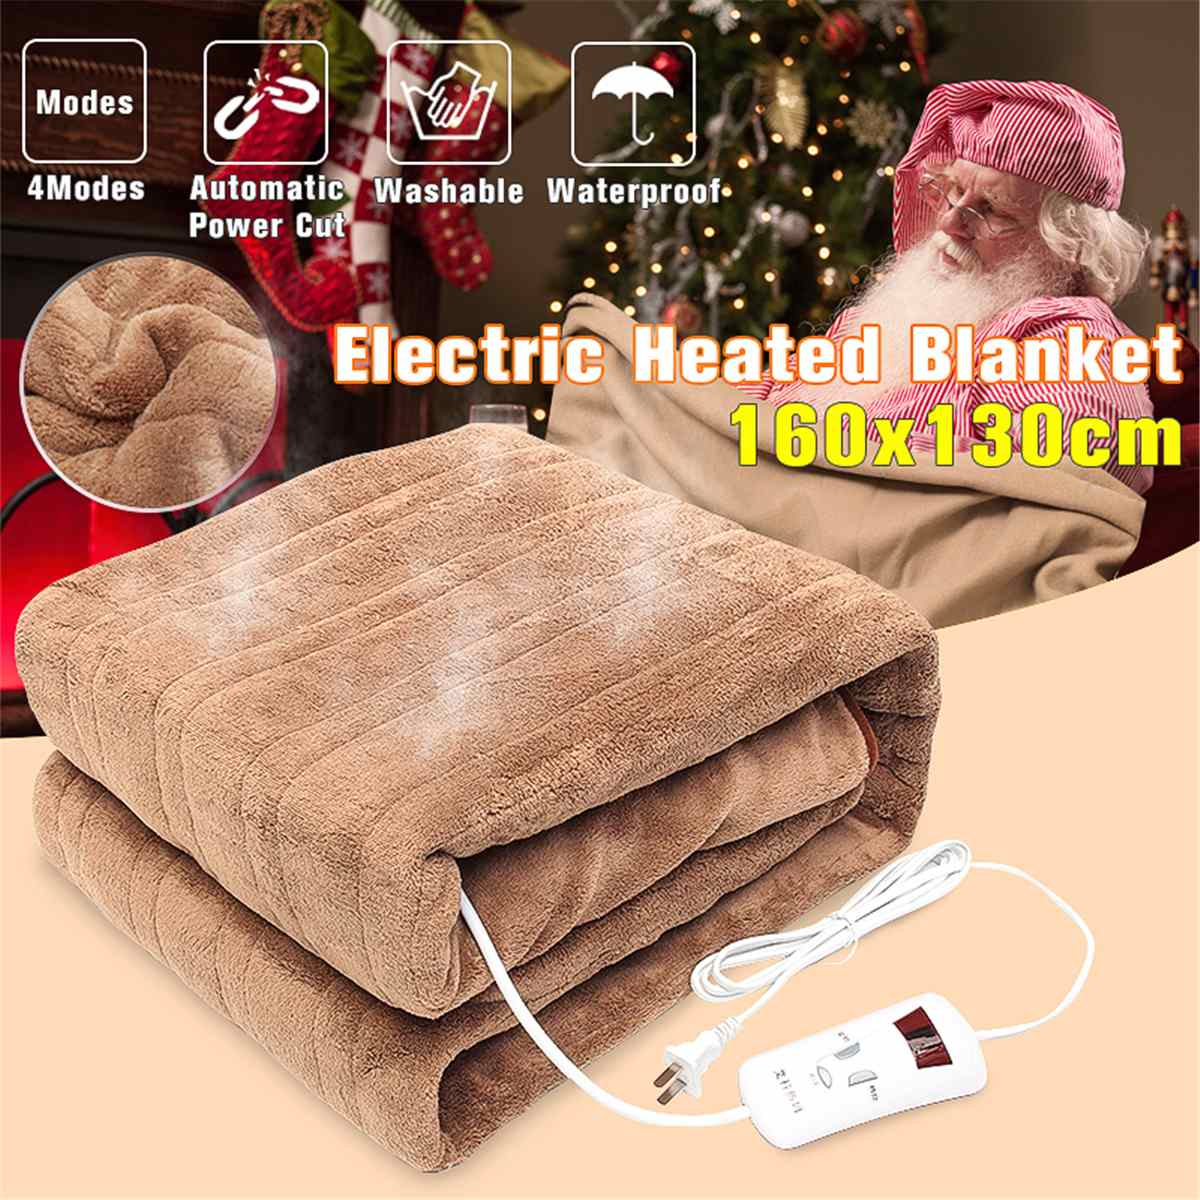 220V Waterproof Automatic Double Electric Blanlet Heated Blanket Mat Single-control Dormitory Bedroom Heating Carpet Mat220V Waterproof Automatic Double Electric Blanlet Heated Blanket Mat Single-control Dormitory Bedroom Heating Carpet Mat